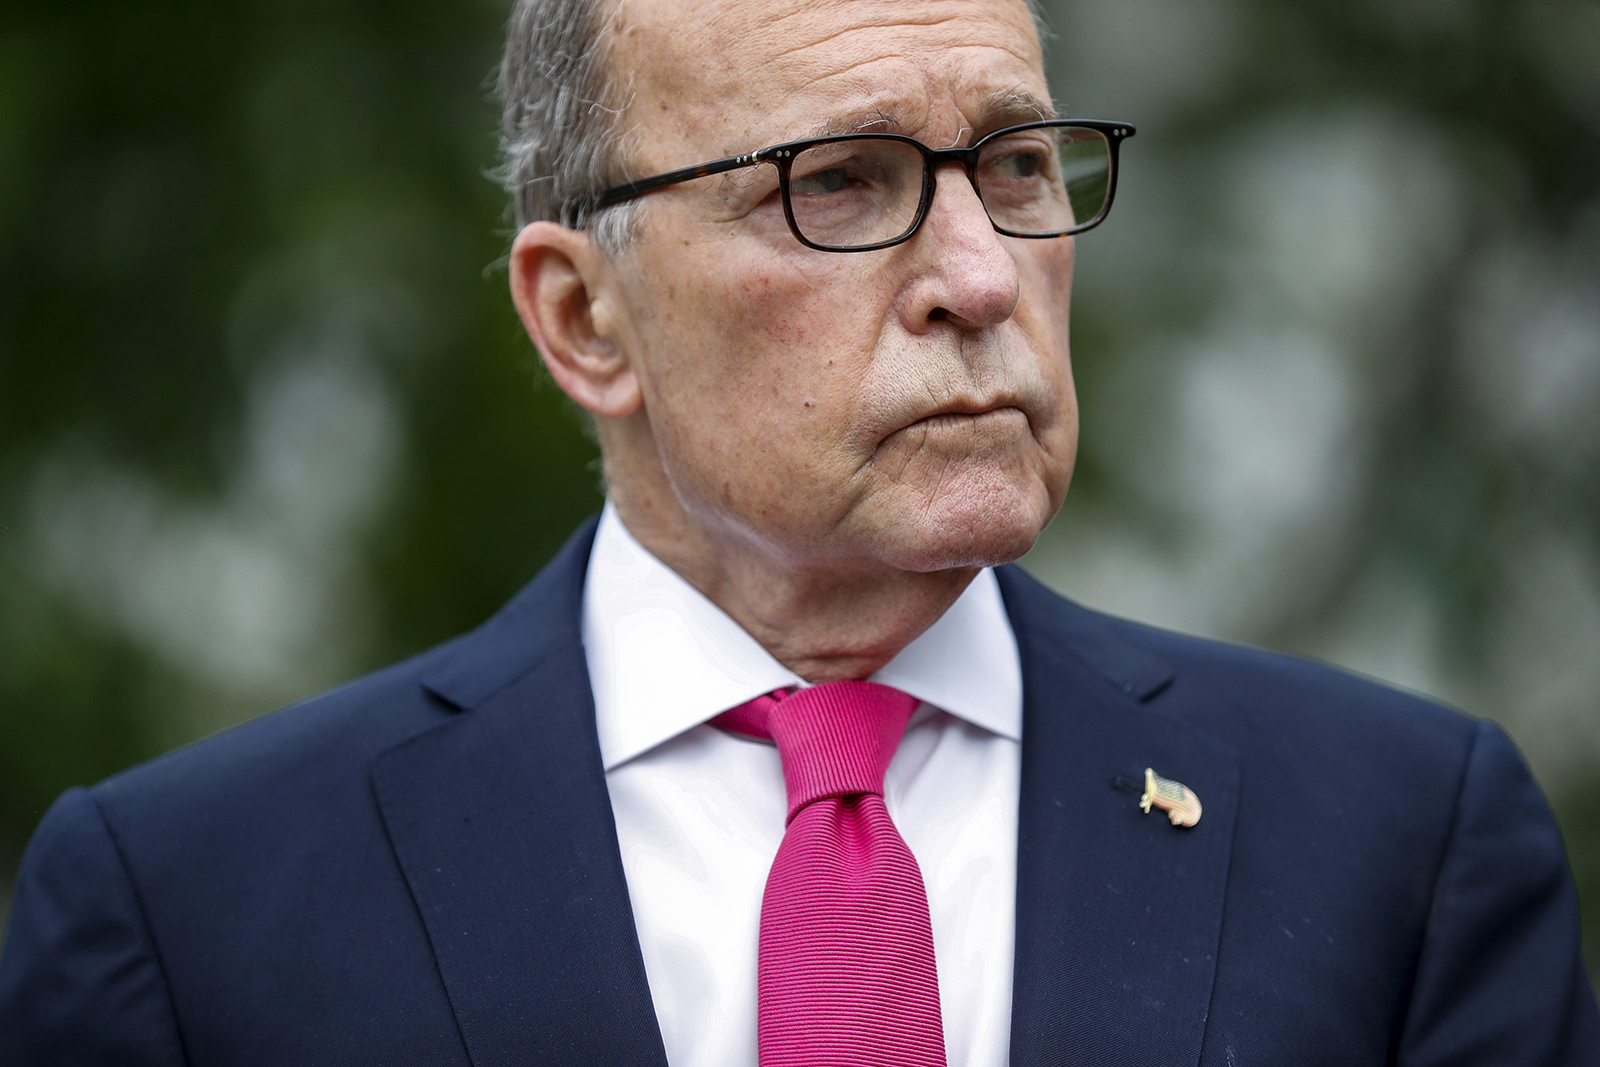 National Economic Council DirectorLarry Kudlowpauses while speaking to members of the media in Washington, on May 8.